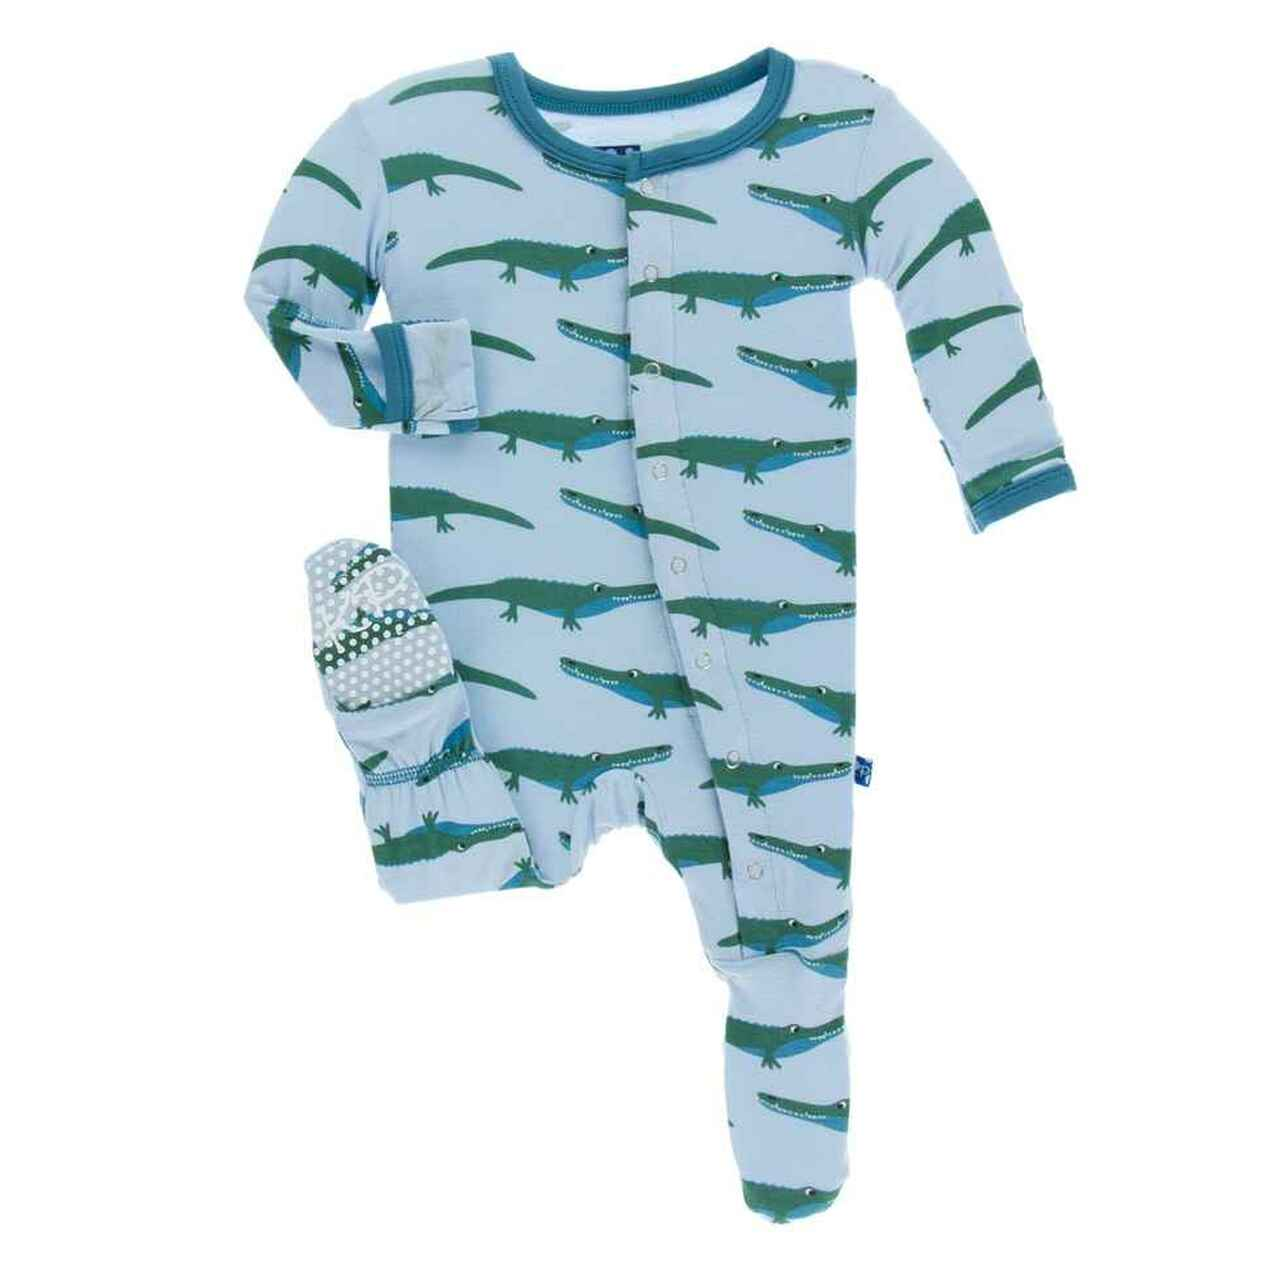 Kickee Pants Print Footie with Snaps - Pond Crocodile